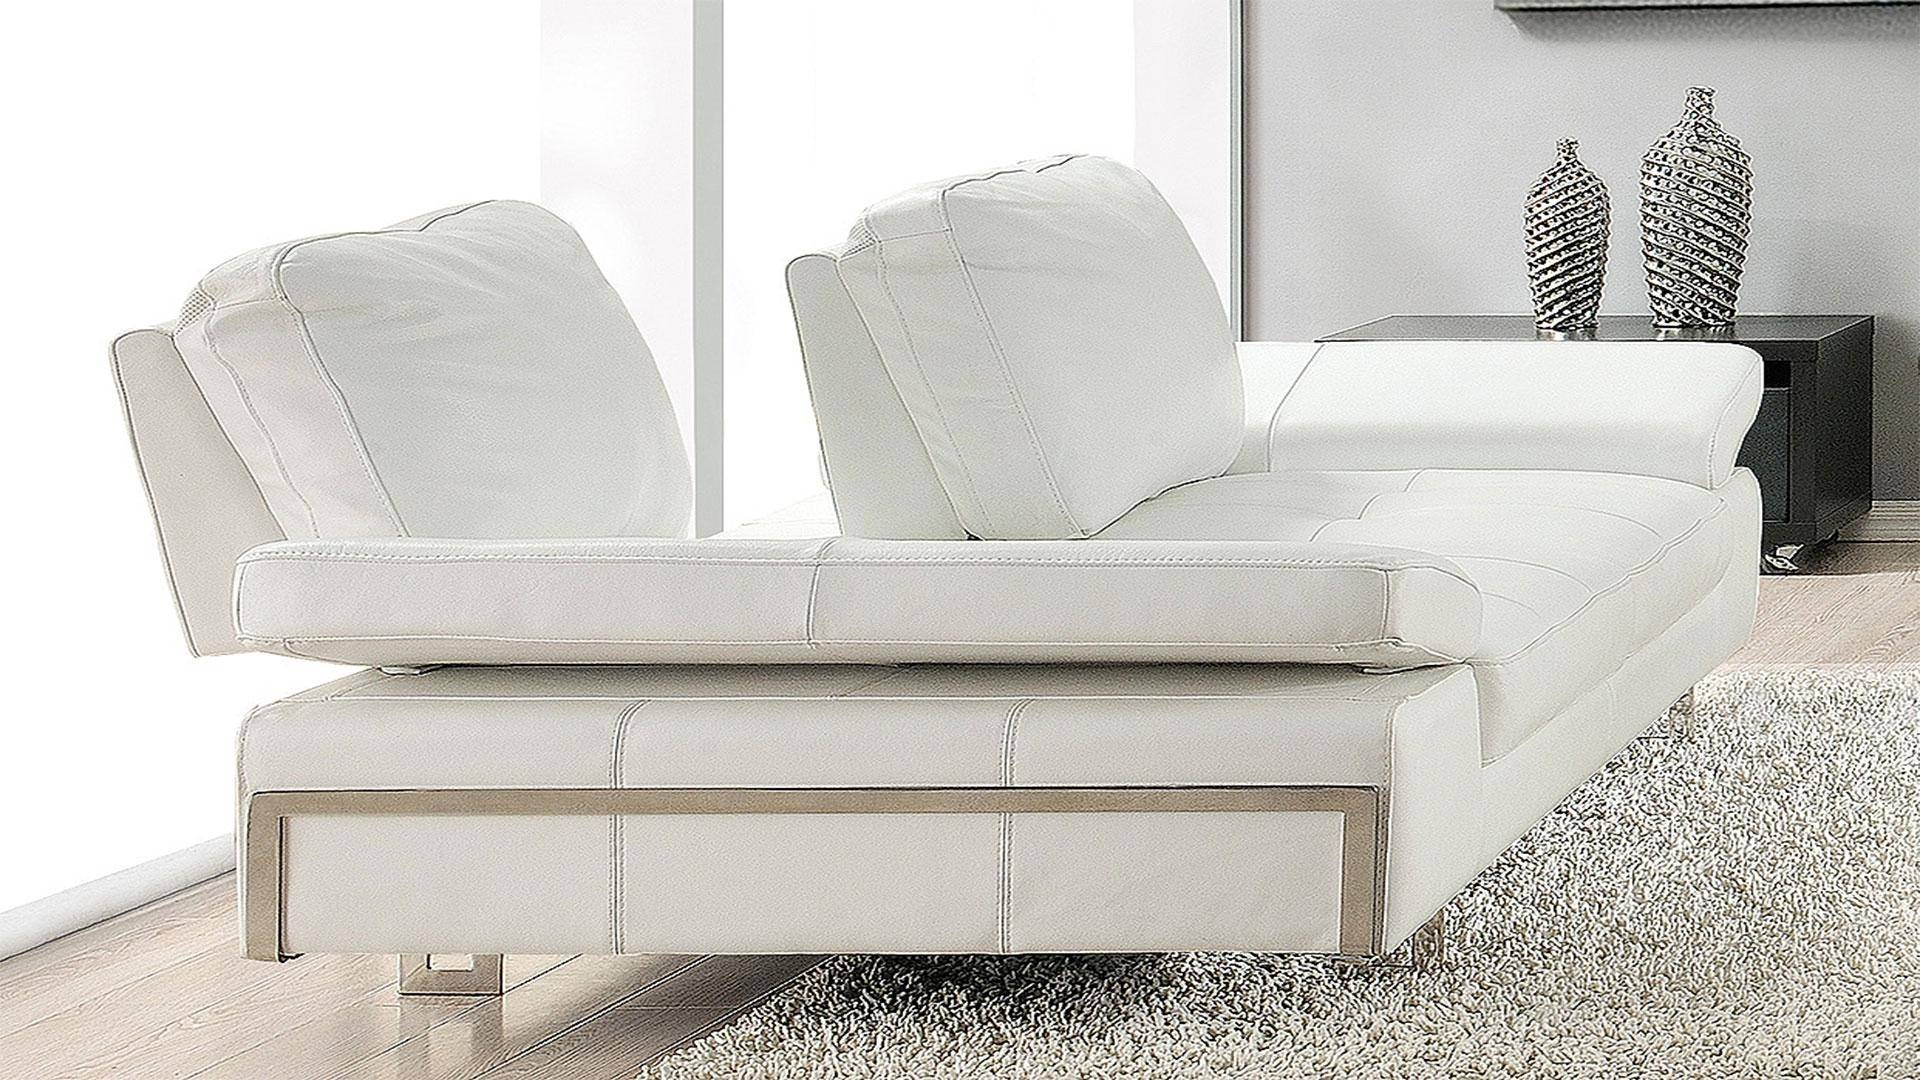 At Home Usa Skuhite603 Gia White Luxury Italian Leather Ultra Modern Sofa